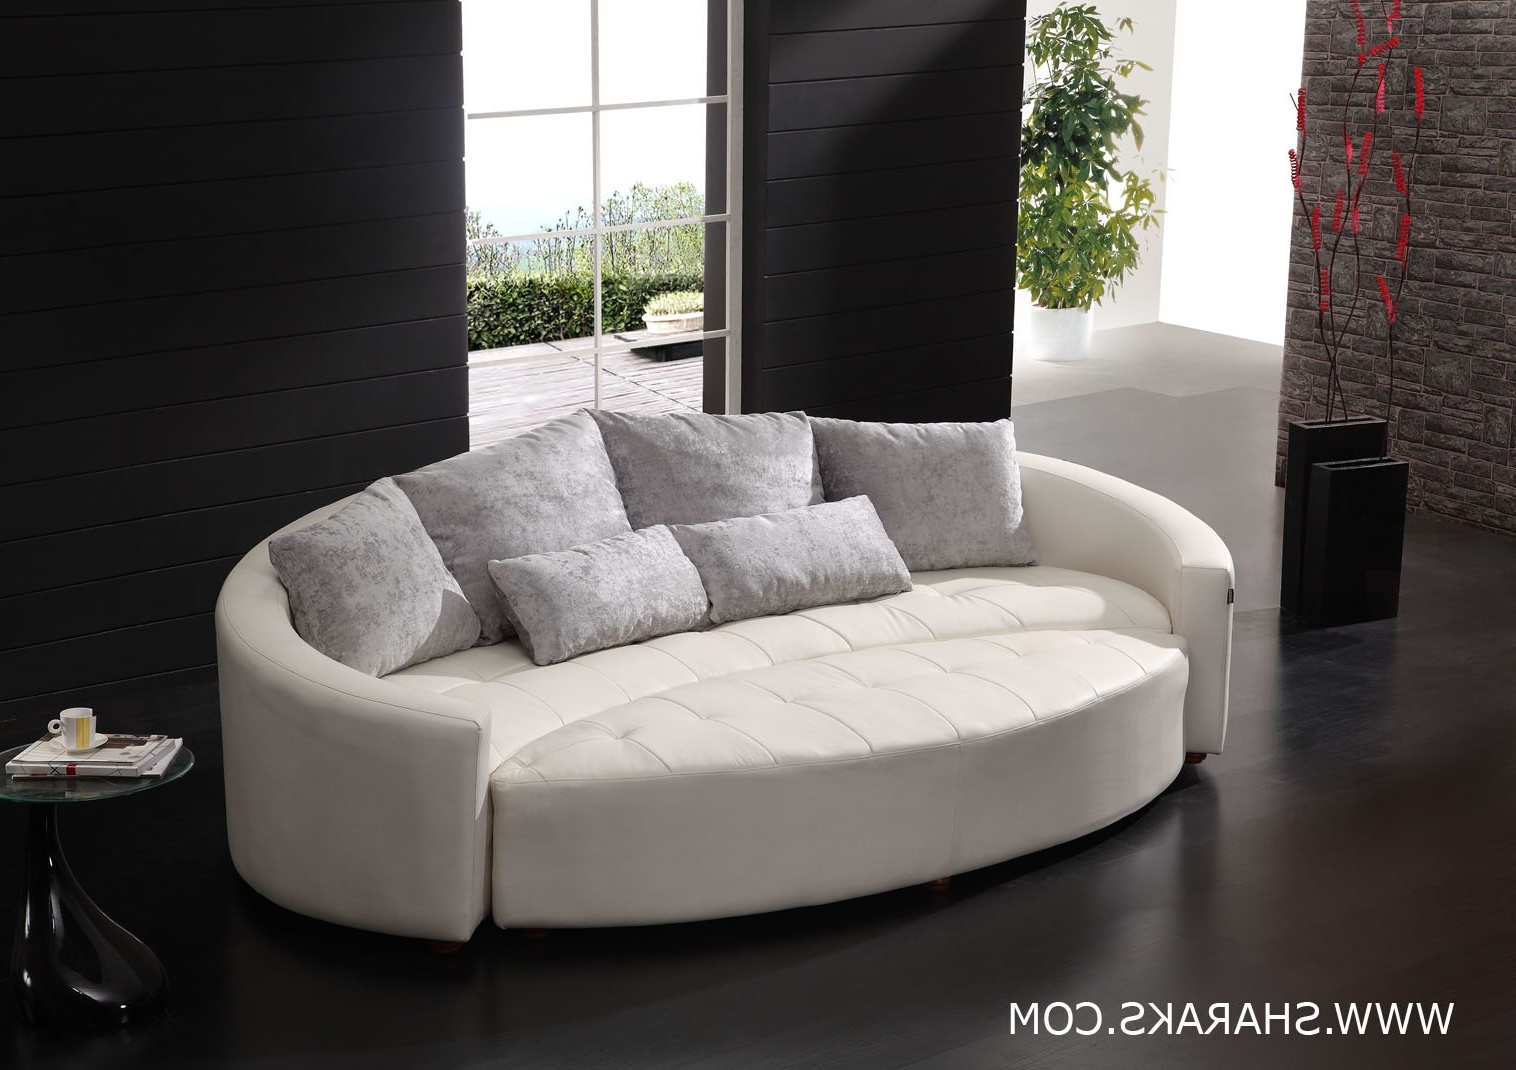 Awesome Round Lounge Couch 26 About Remodel Modern Sofa Regarding Preferred Round Sofas (View 1 of 15)